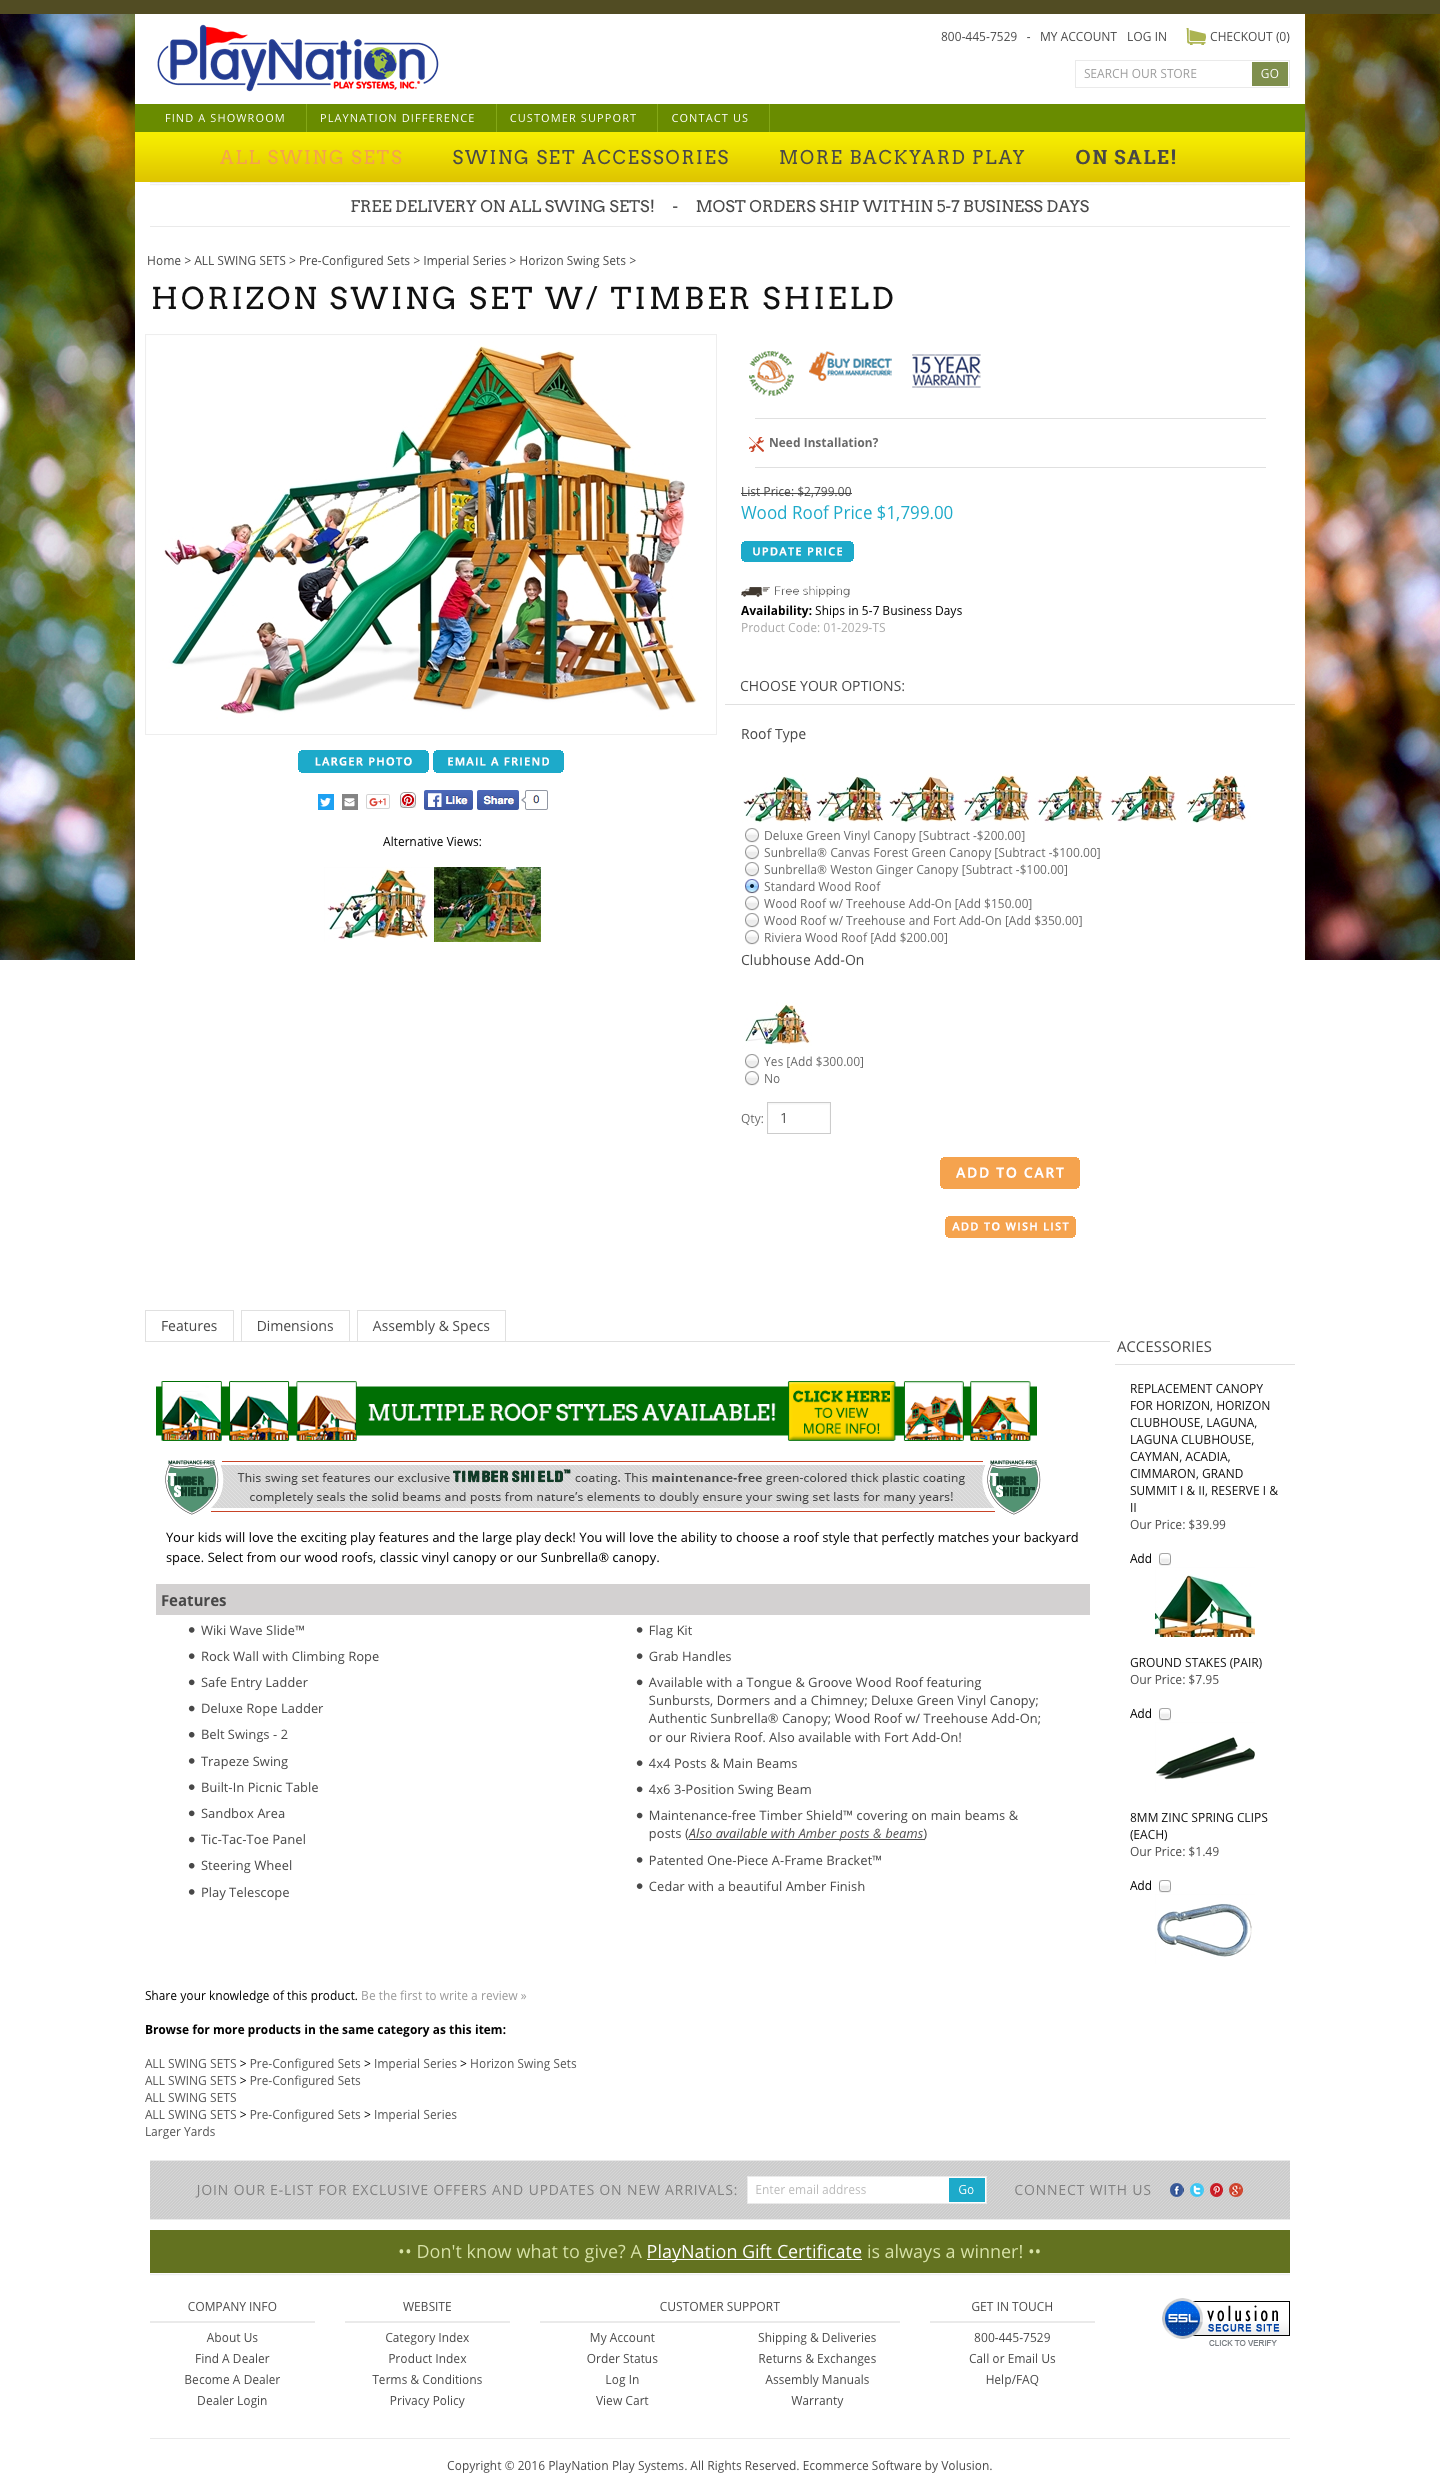 Swing set product page. I designed the ordering structure (selecting roof types, etc) and the information that is visible in the product details tabs.